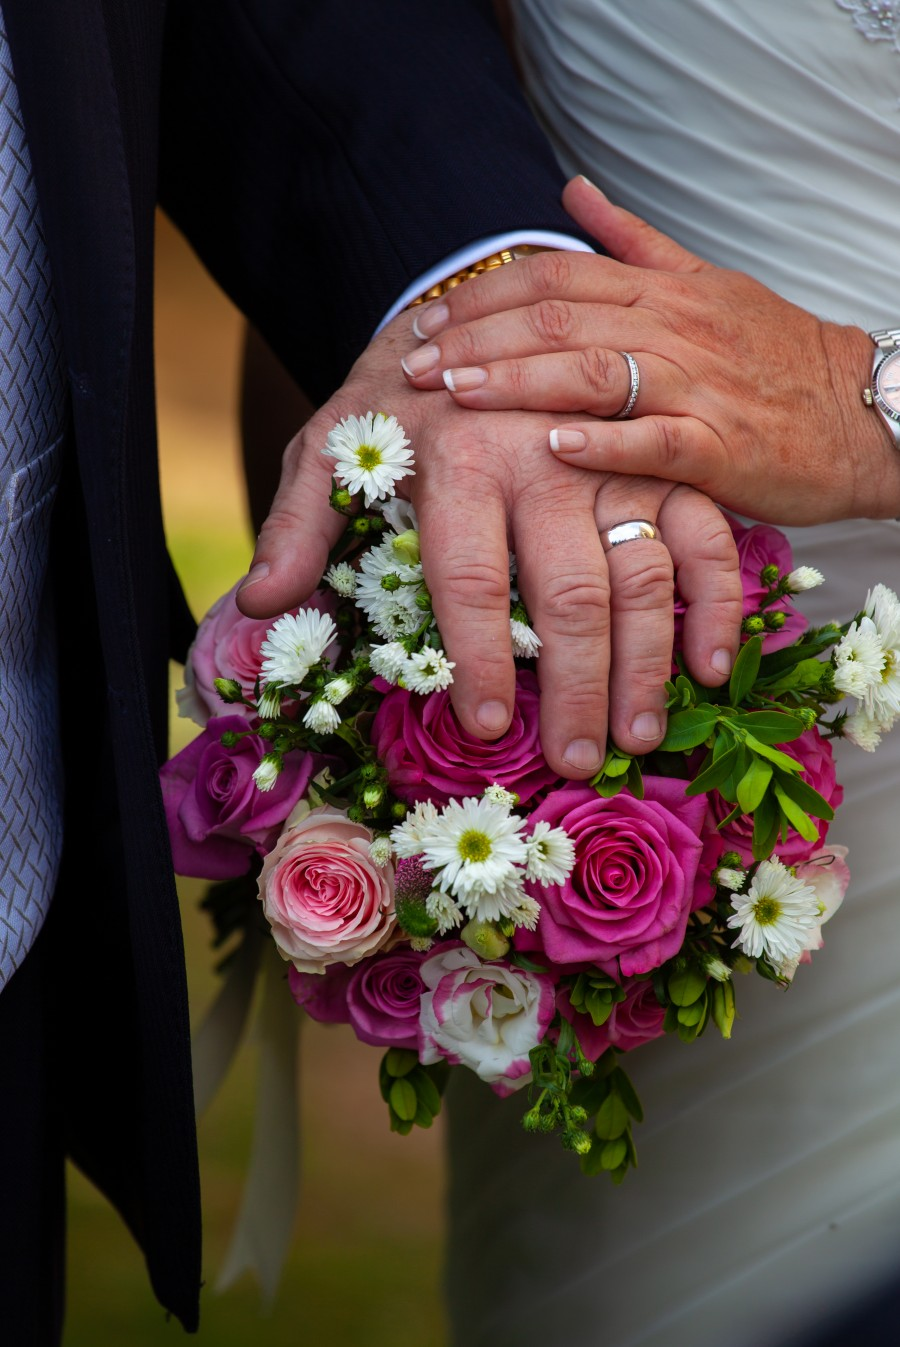 hands showing wedding rings